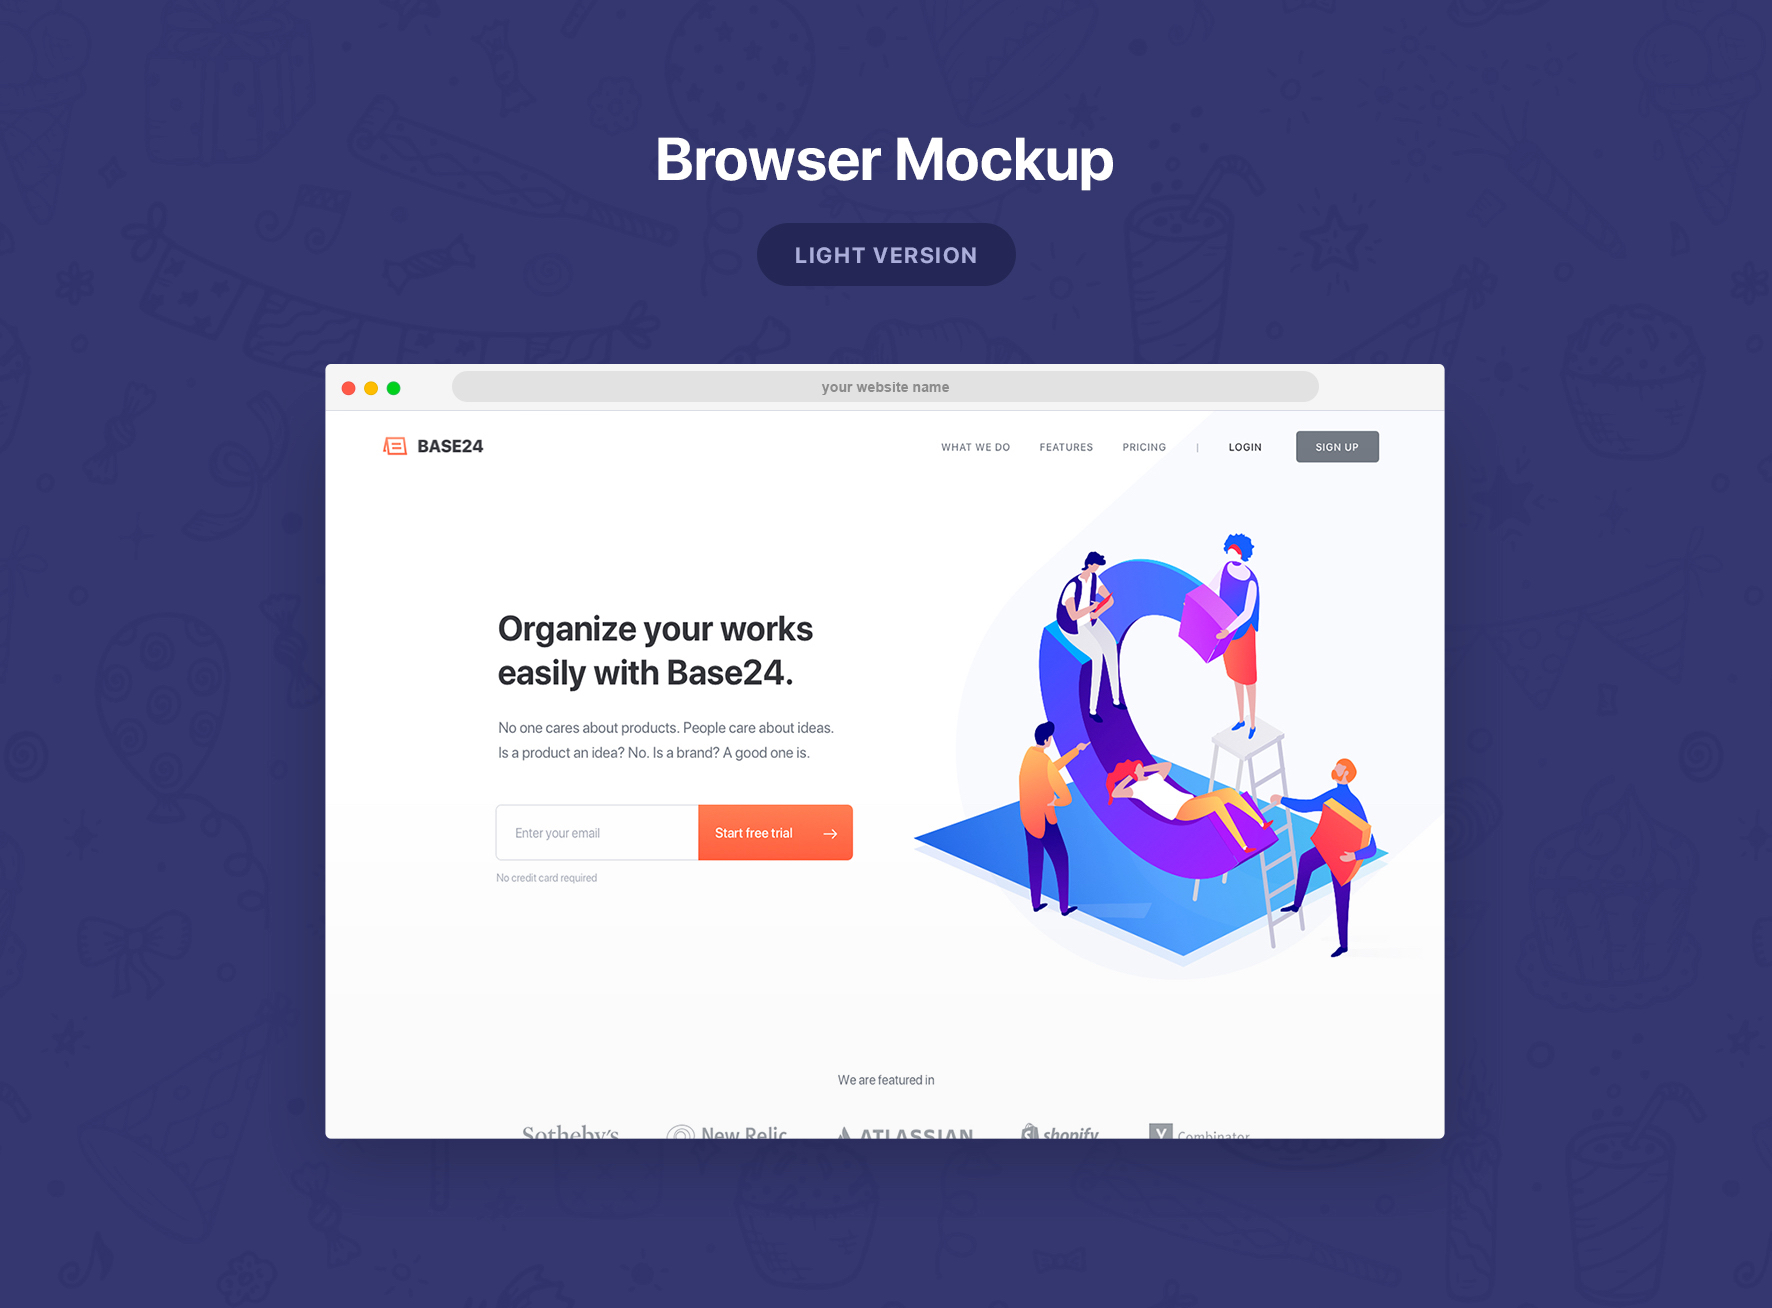 Safari Browser Mockup - Present your website in beautiful browsers. PSD and Sketch files included.